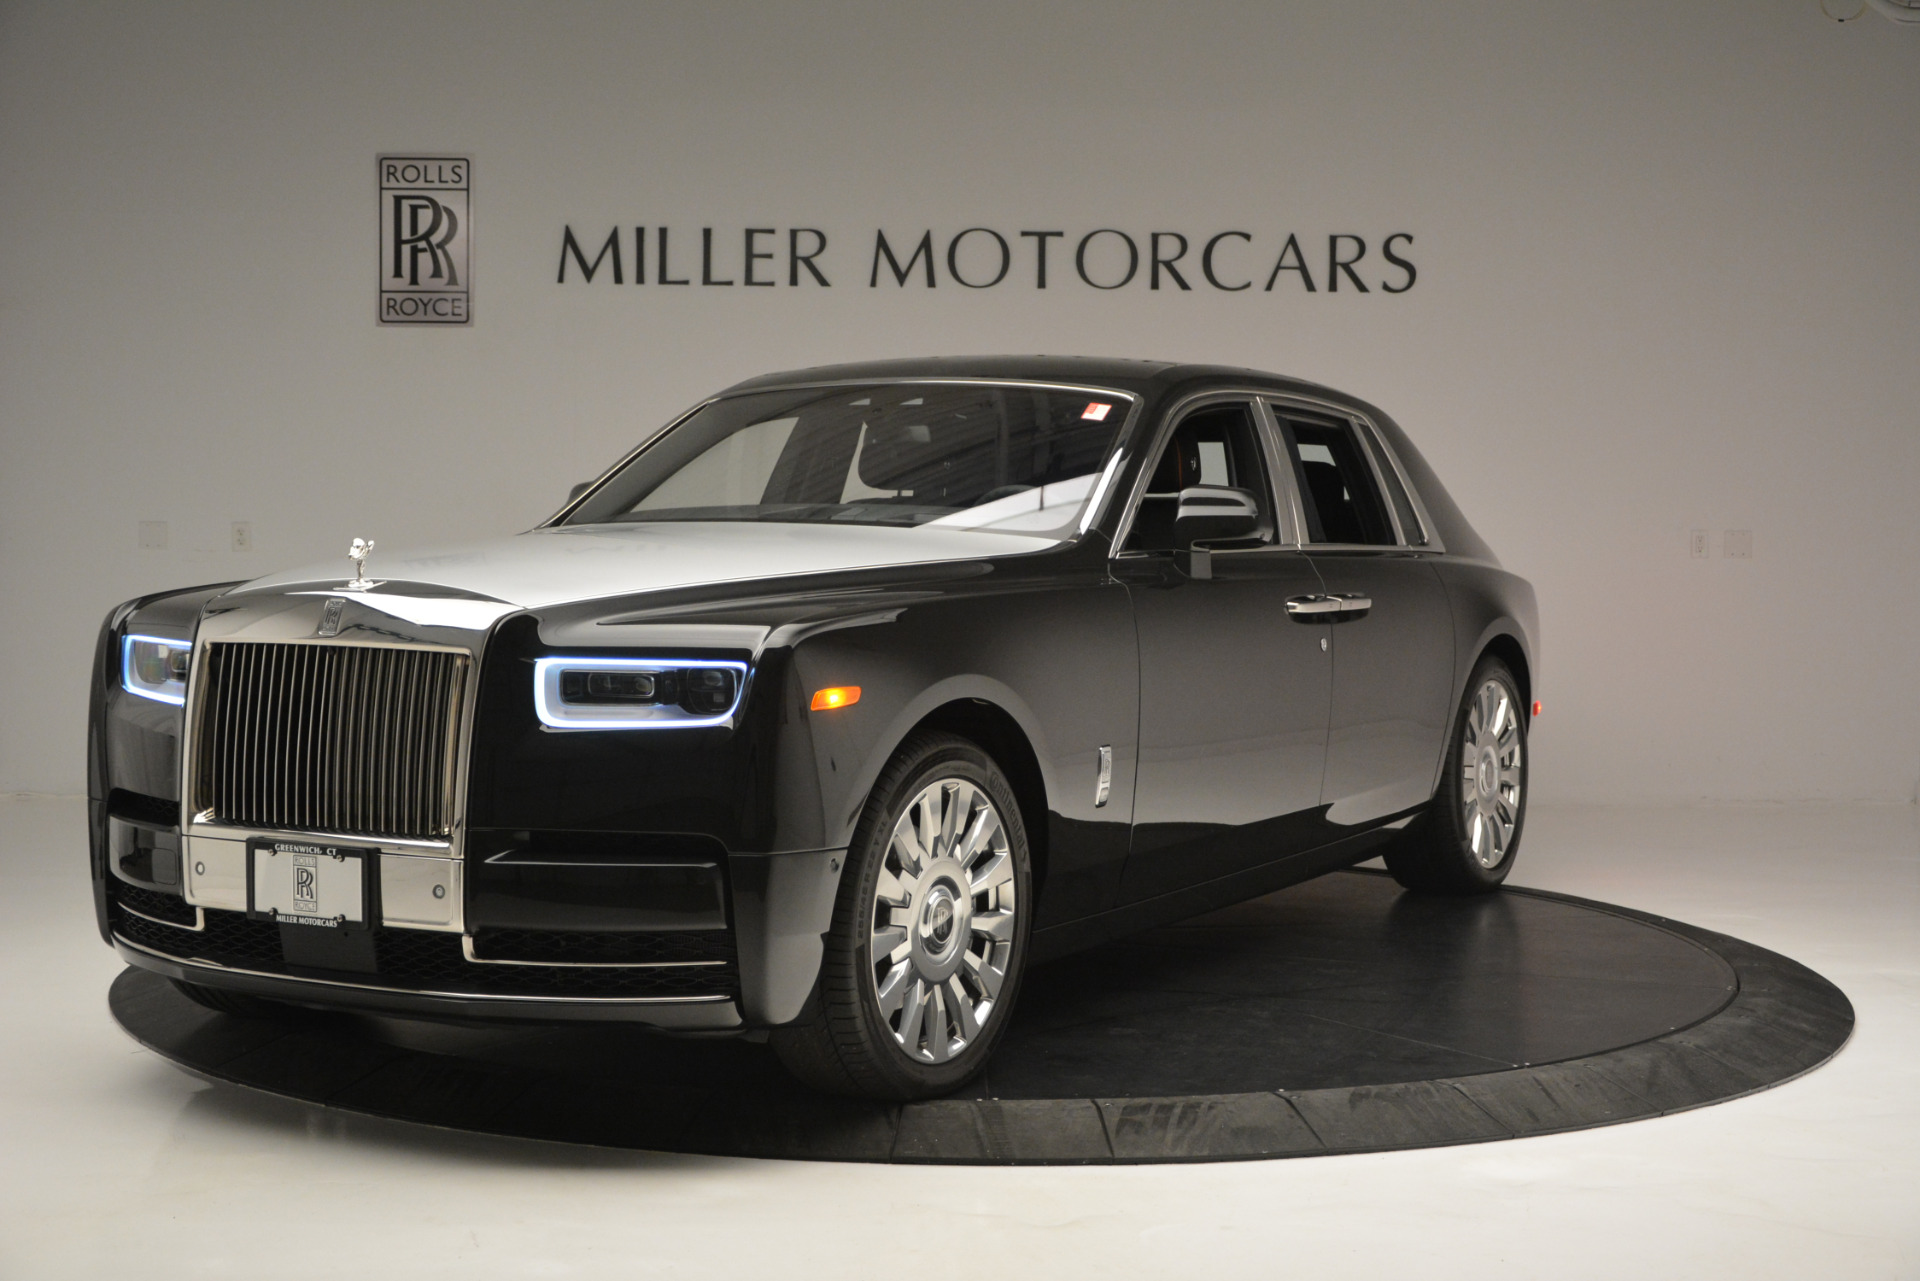 Used 2018 Rolls-Royce Phantom for sale Sold at Bentley Greenwich in Greenwich CT 06830 1